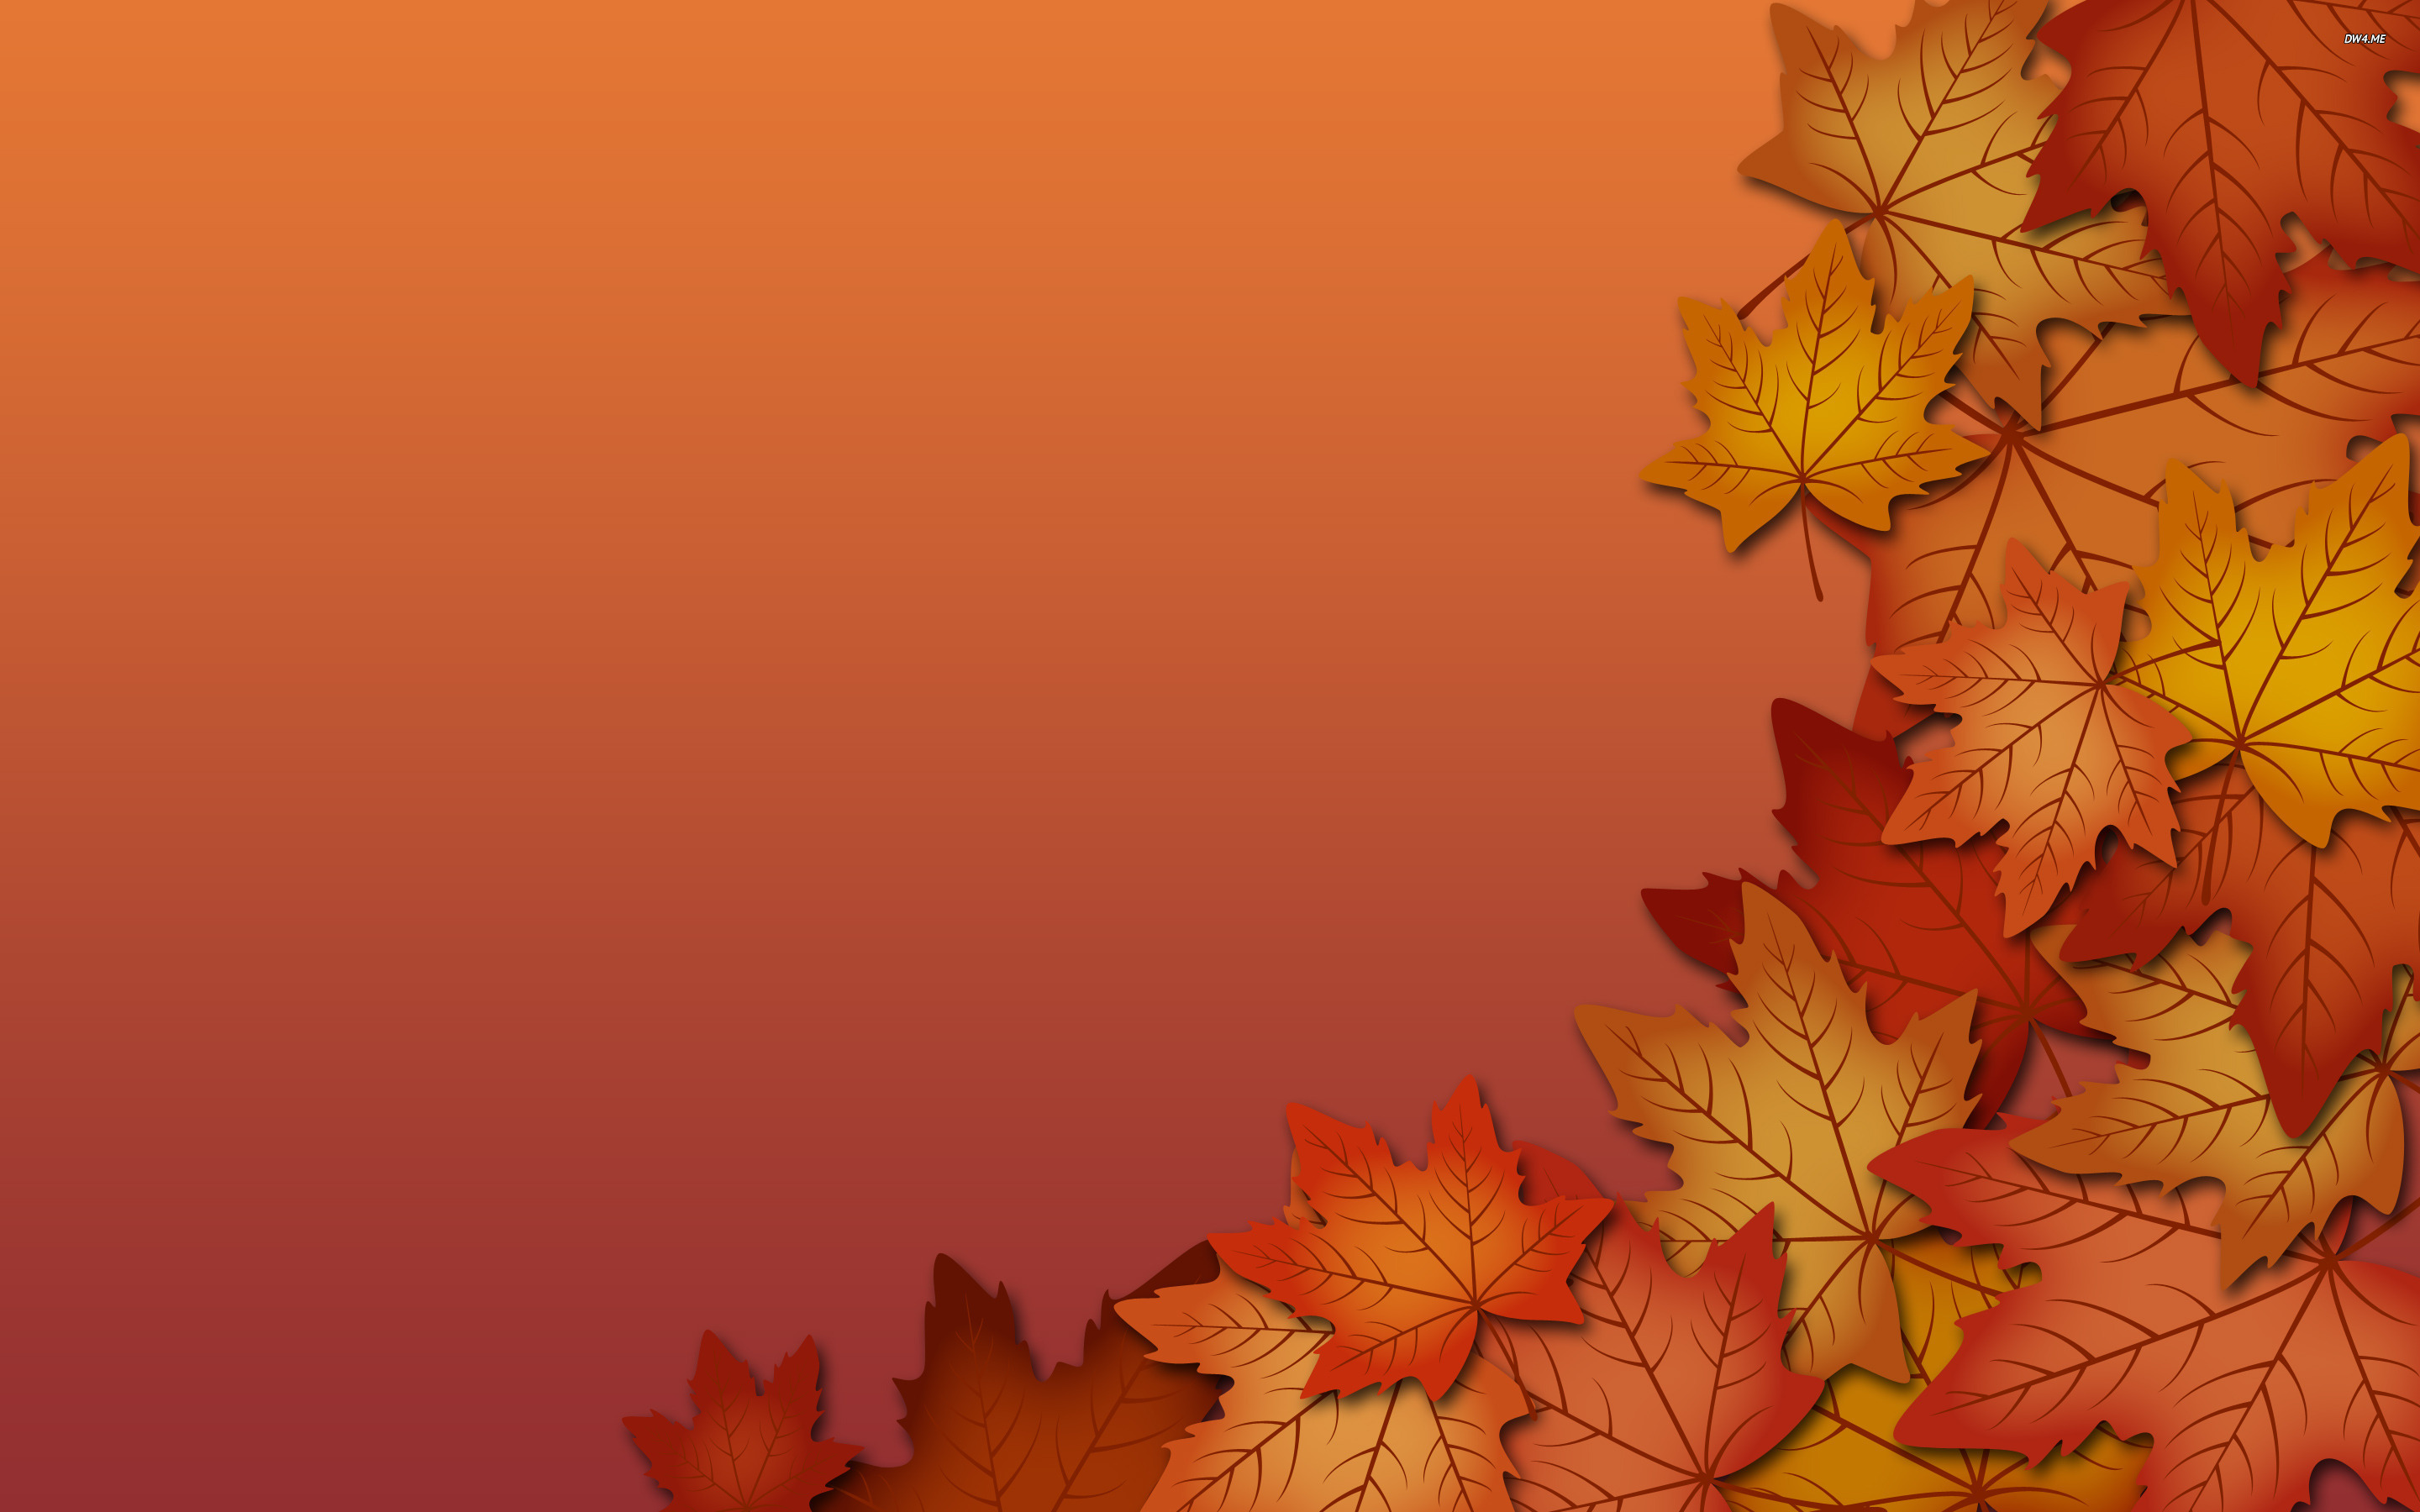 Autumn leaves wallpaper   1009269 2880x1800